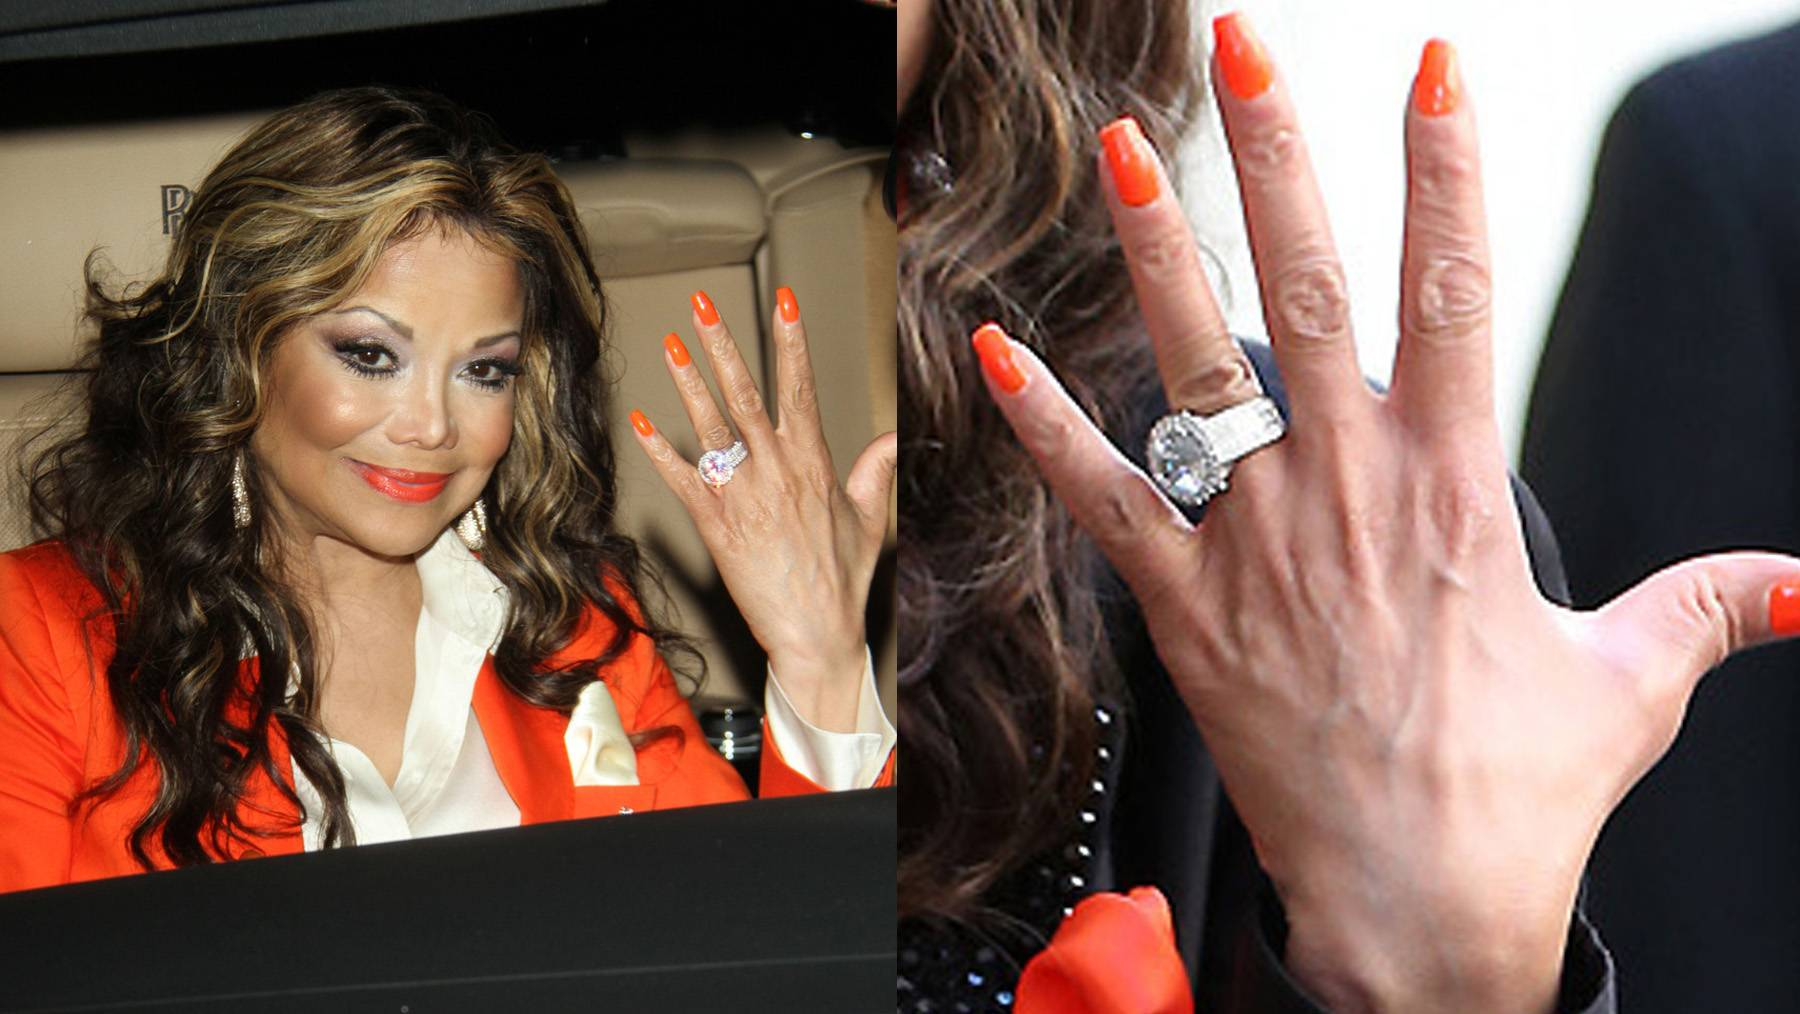 """LaToya Jackson  - The singer and reality TV star said """"yes"""" to her longtime business partner Jeffré Phillips while vacationing together in Hawaii last August. Sadly, they called off their plans this past February, but here's a closer look at what was: an enormous diamond ring, featuring a 10-carat round center stone and surrounded by another 7.5-carats of diamonds set in a platinum band.  (Photos from left: Greg Tidwell/PacificCoastNews, PacificCoastNews)"""